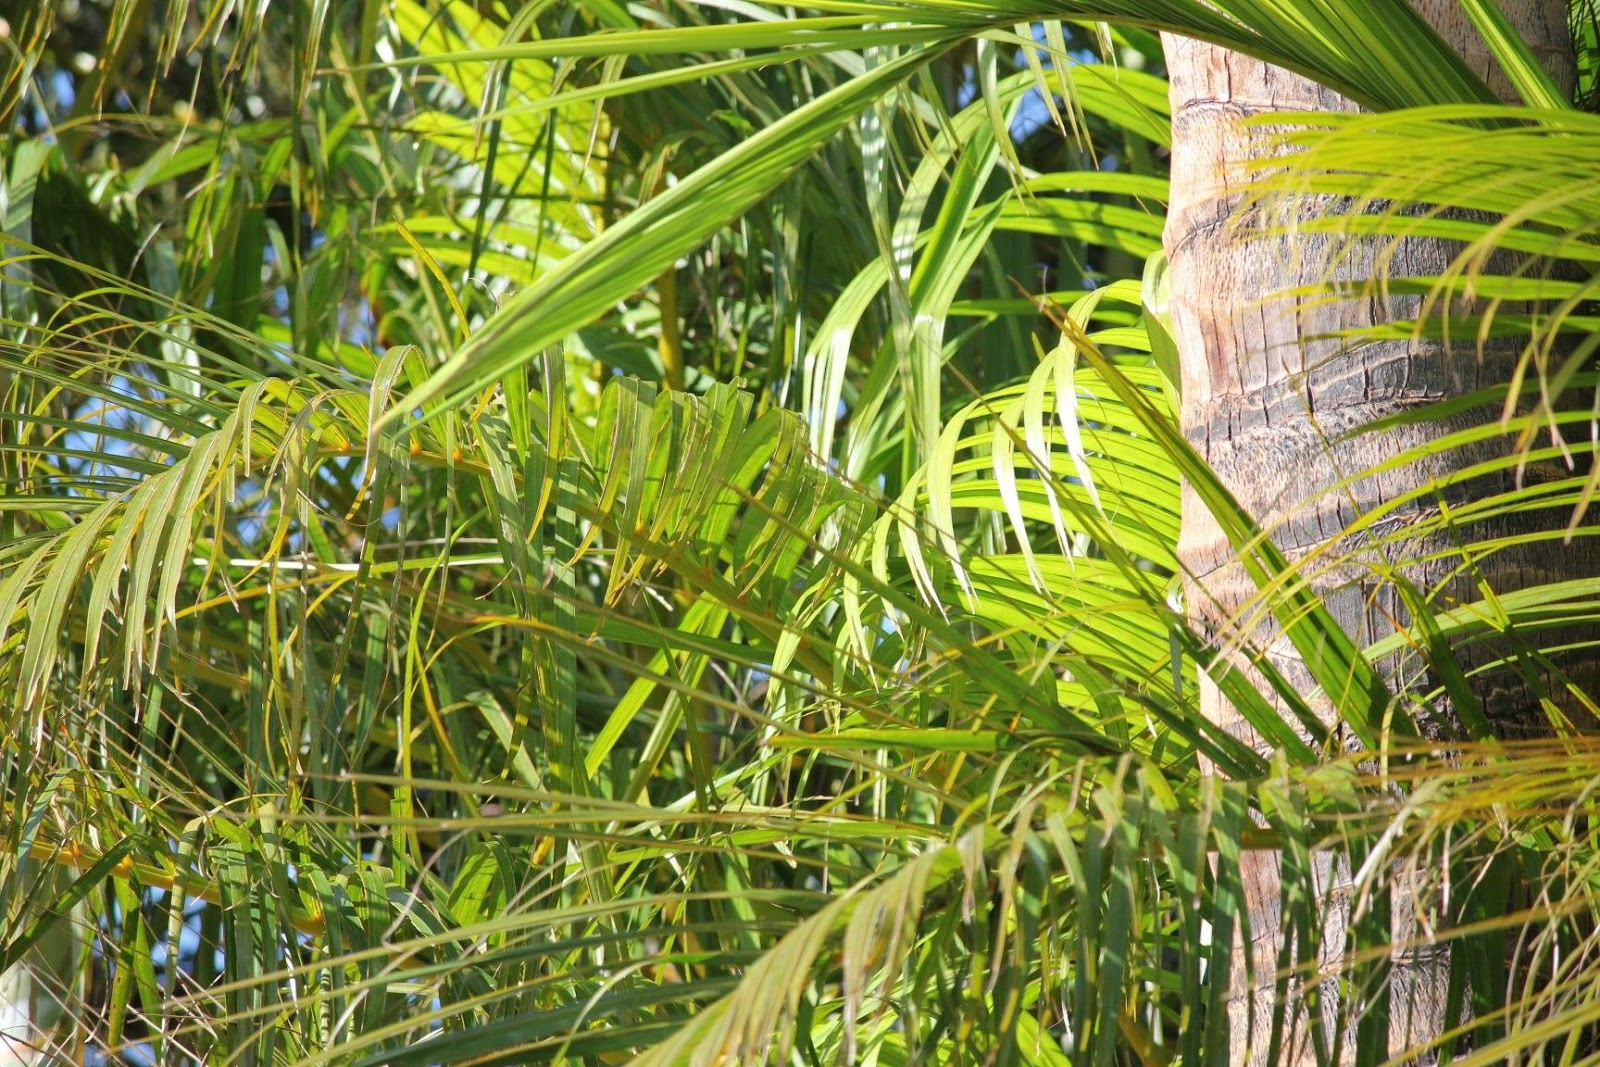 Butterfly Palm Madagascar Palm Areca Palm Chrysalidocarpus How To Grow And Care For The Areca Palm Sproutabl